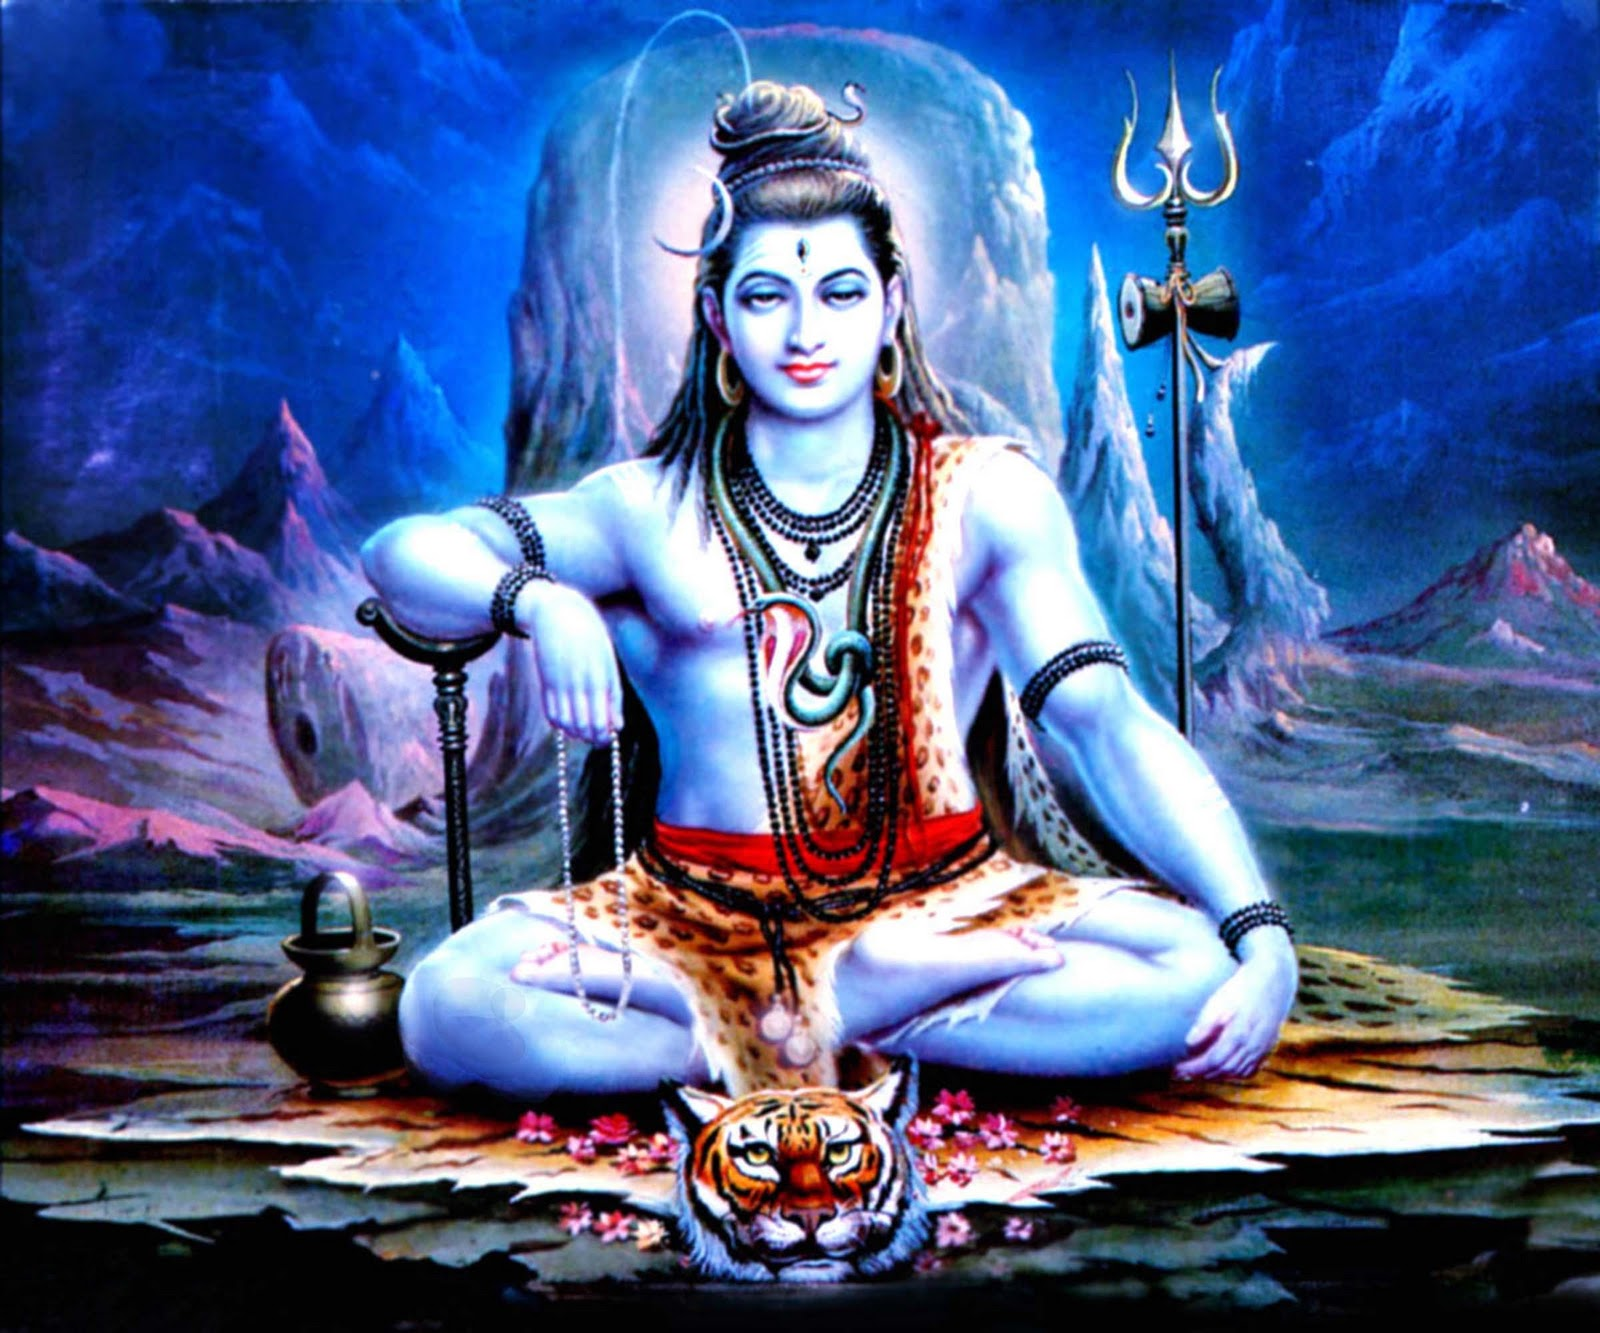 Lord Shiva Full Hd 1080p Photo: Lord Shiva Wallpaper